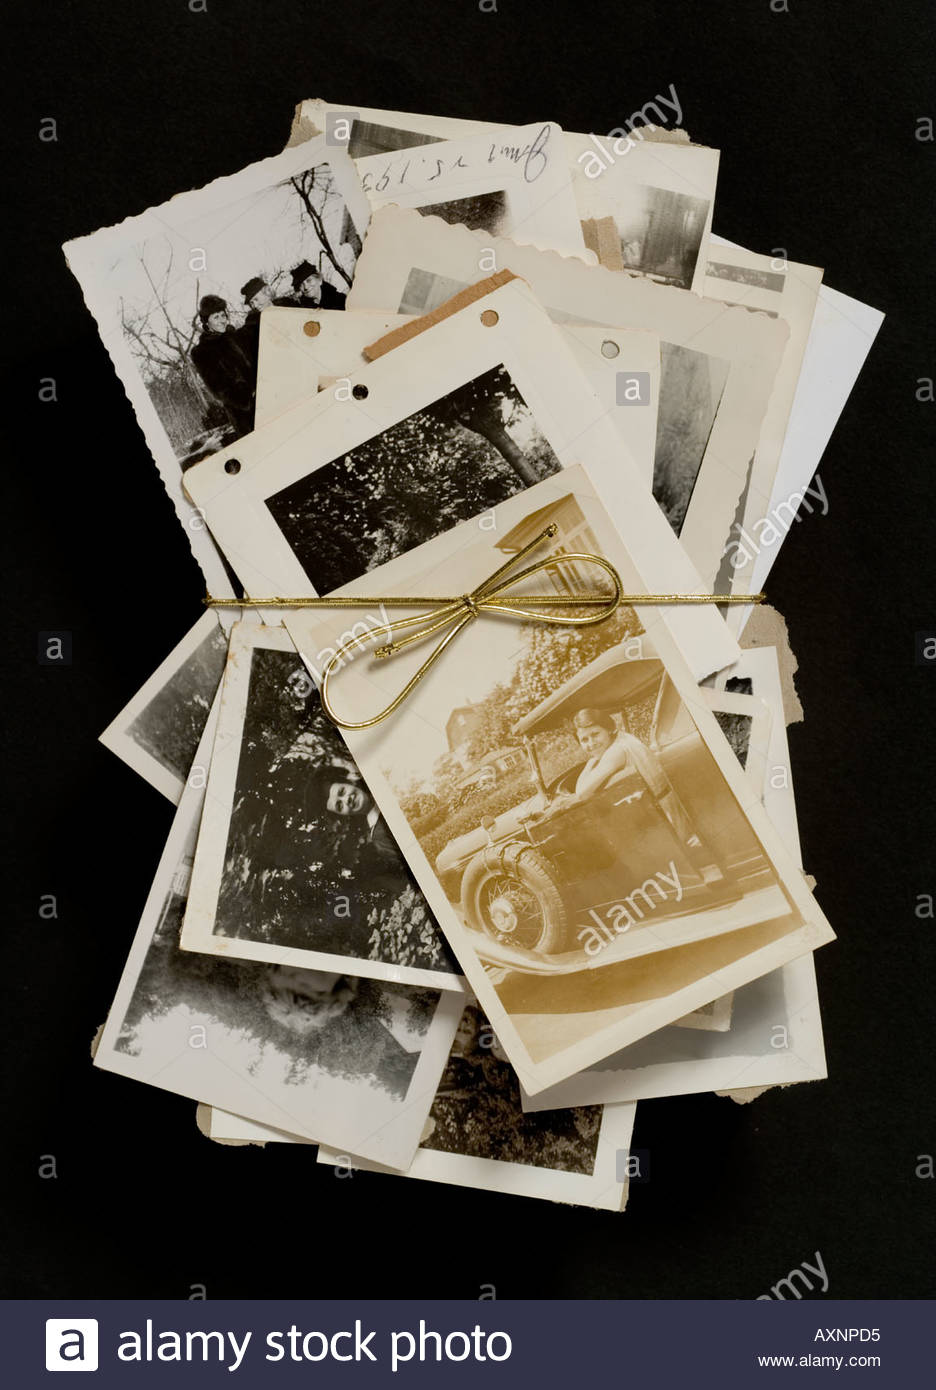 various old photographs hold together with a golden bow tie string - Stock Image